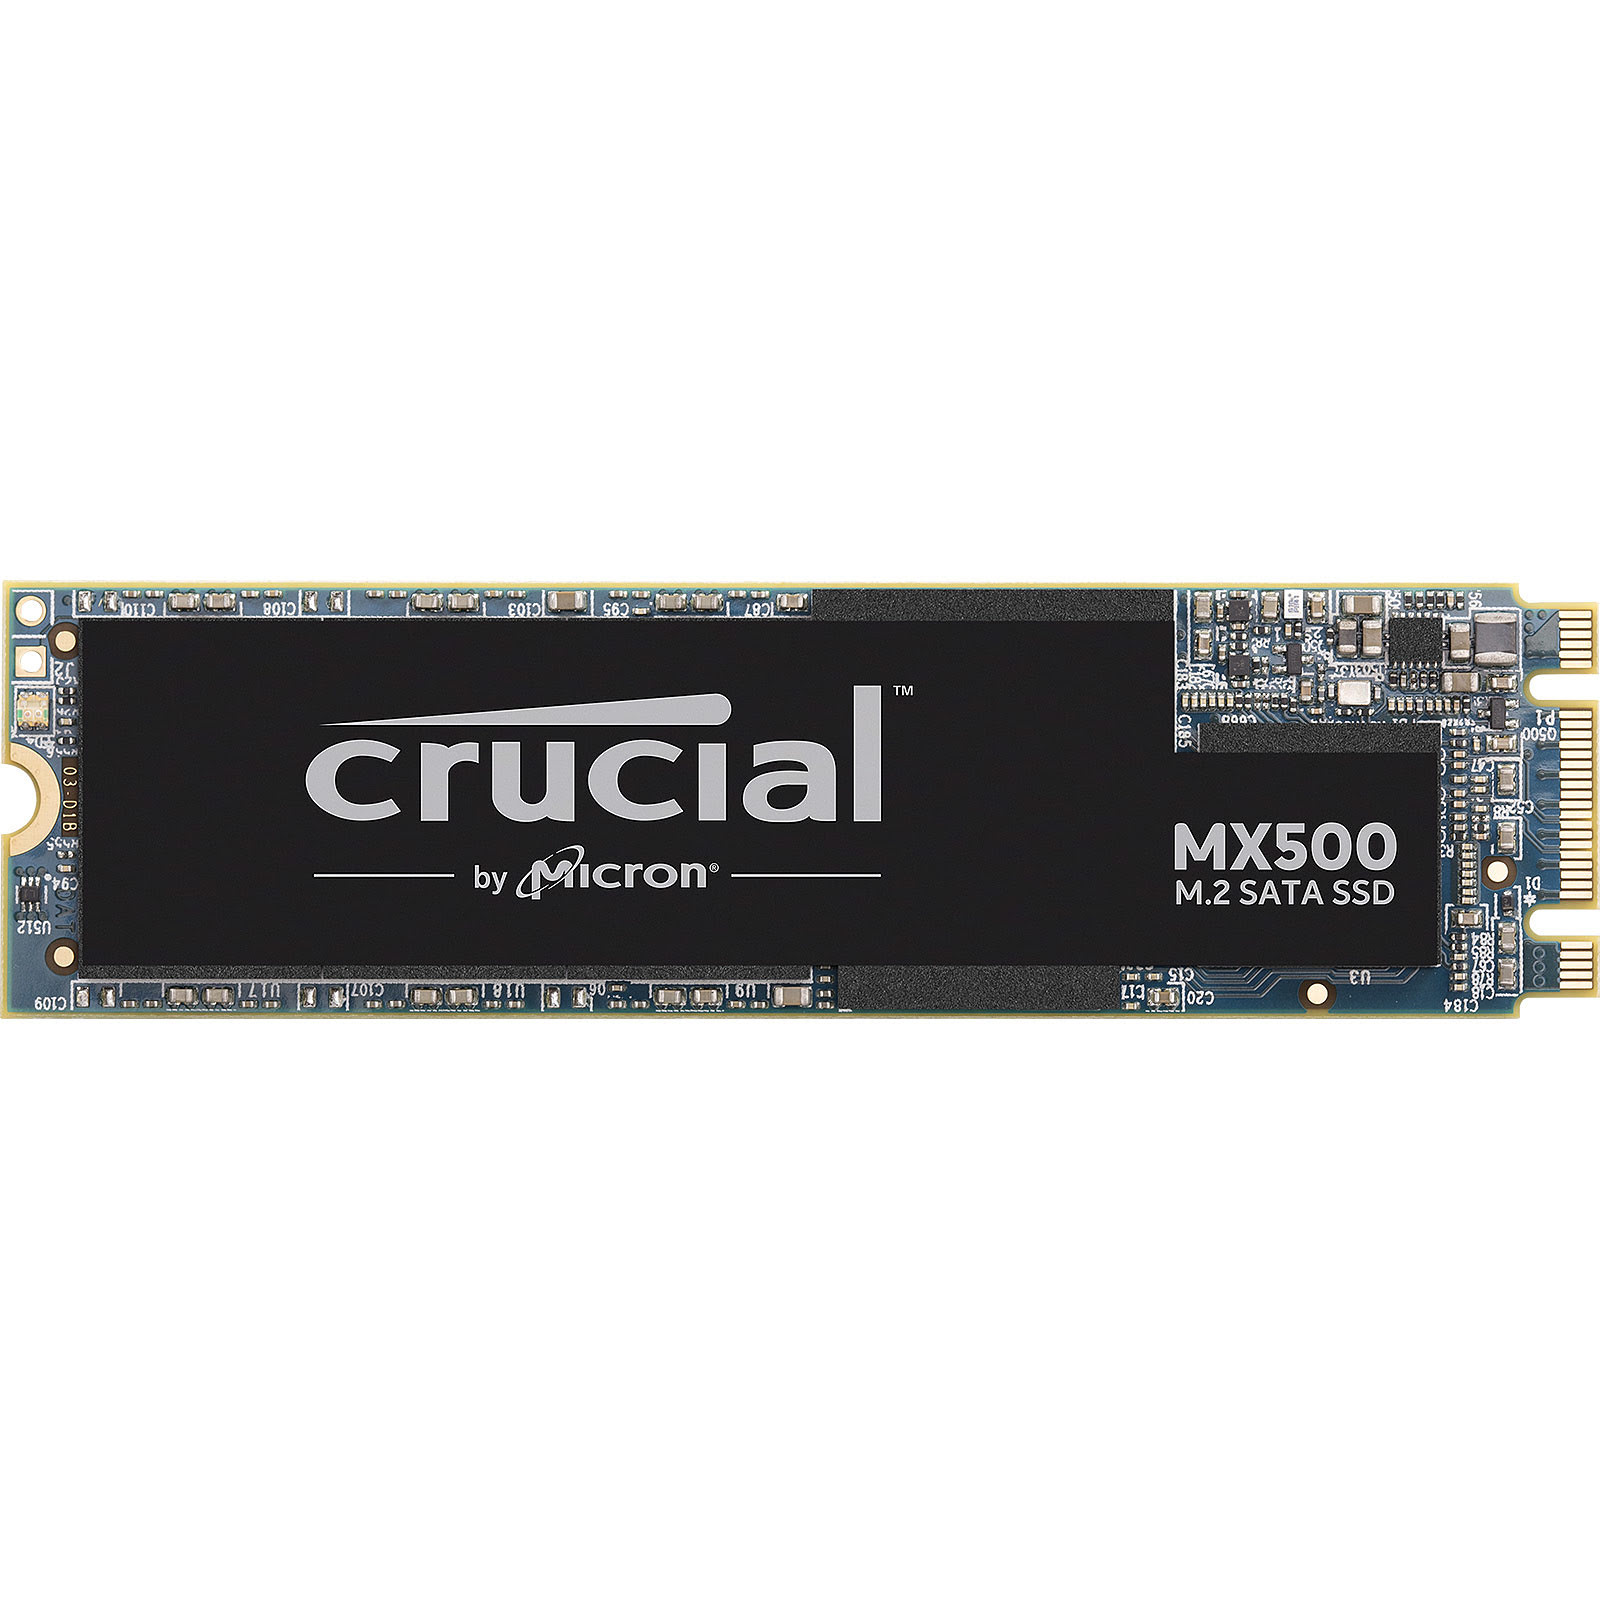 Crucial MX500 960Go-1To M.2 - Disque SSD Crucial - Cybertek.fr - 2